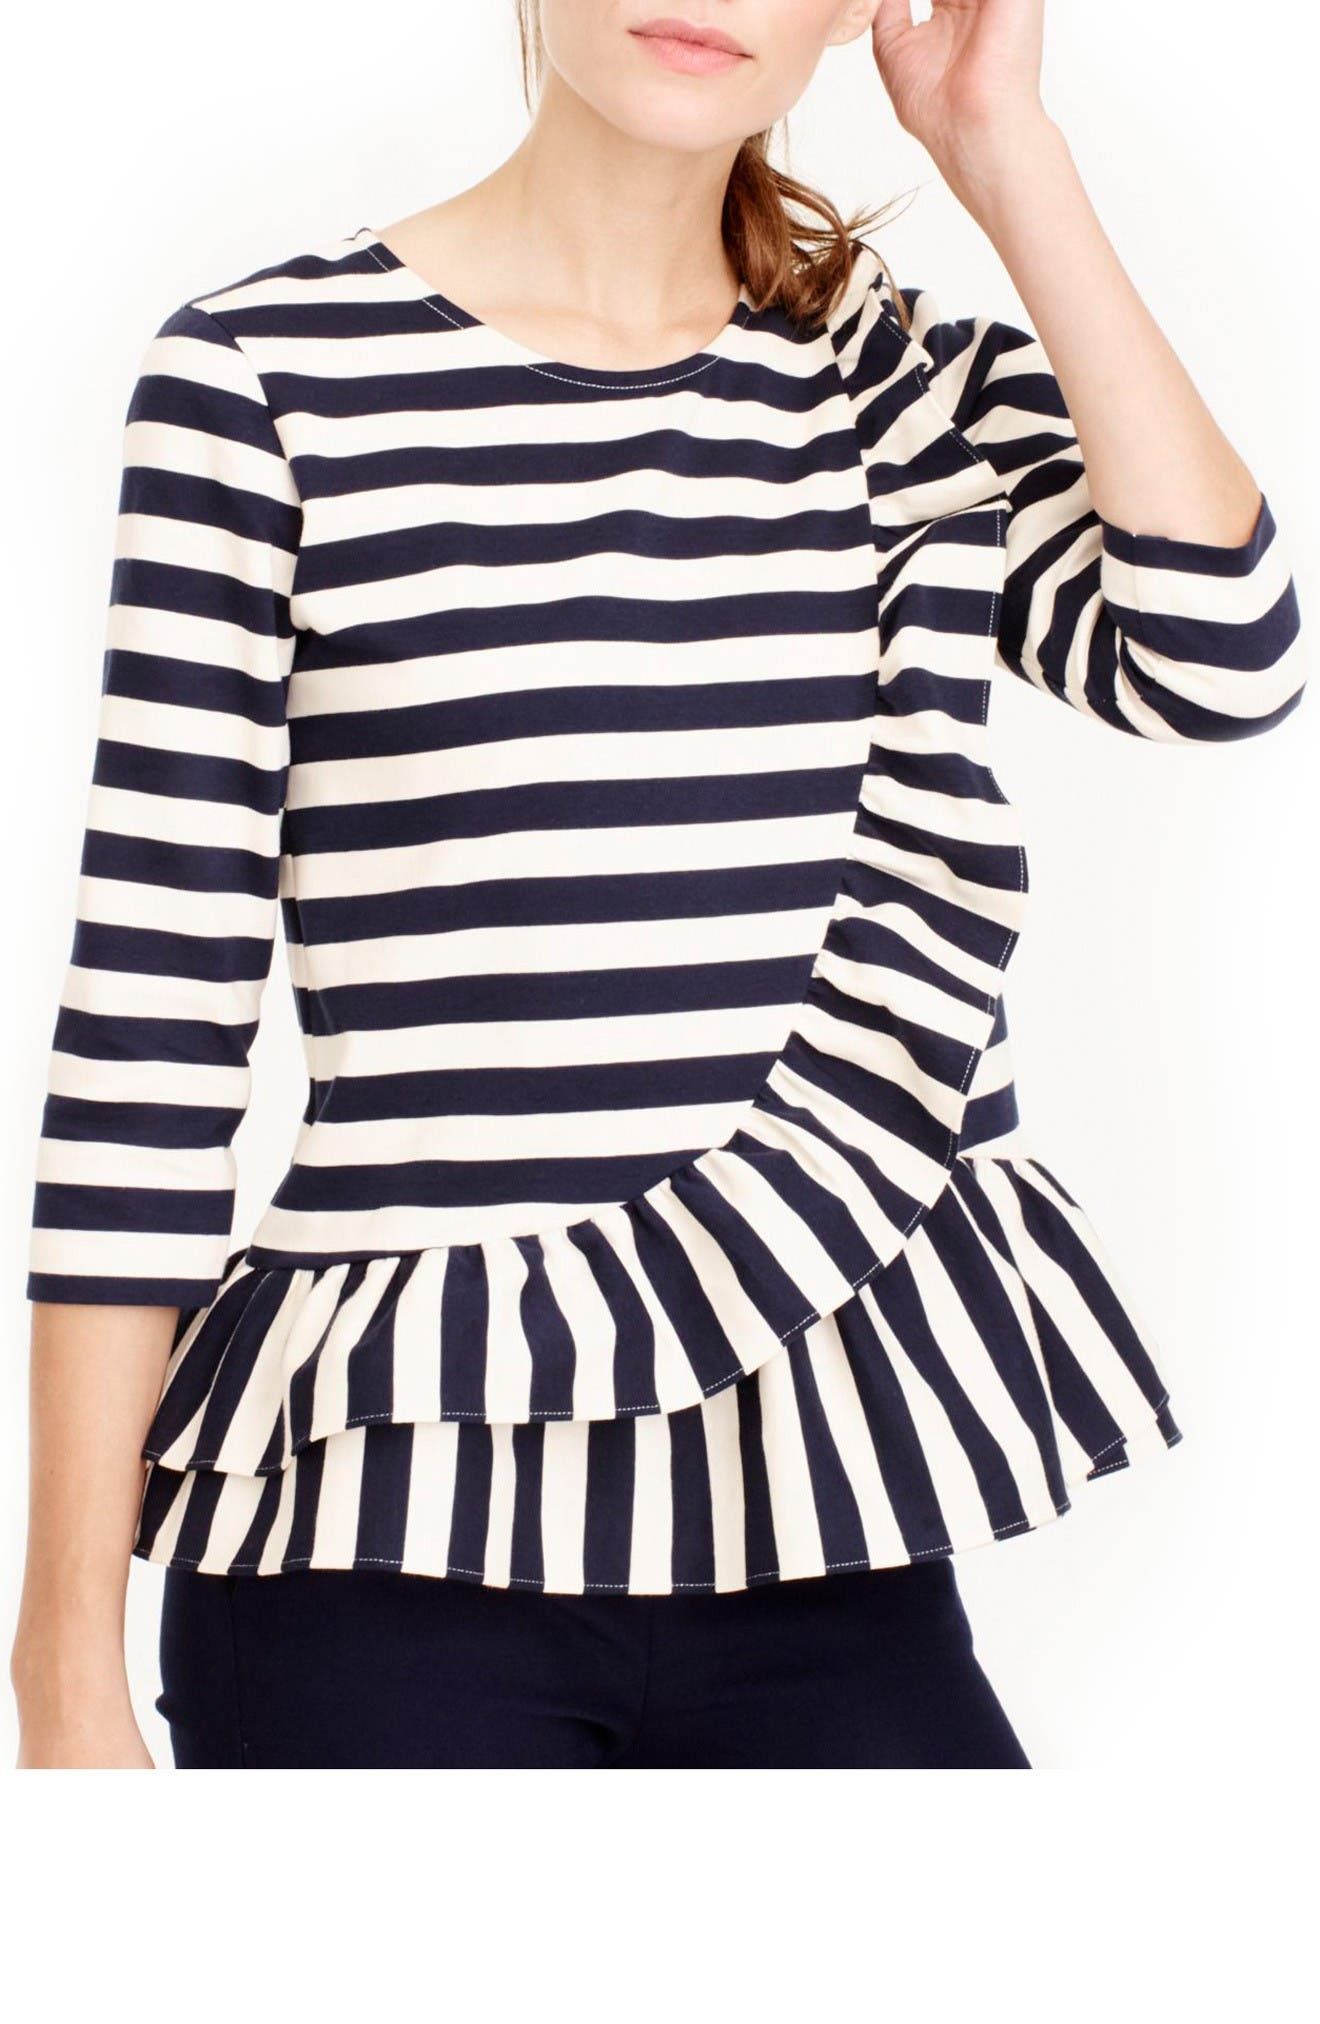 Main Image - J.Crew Asymmetrical Stripe Ruffle Top